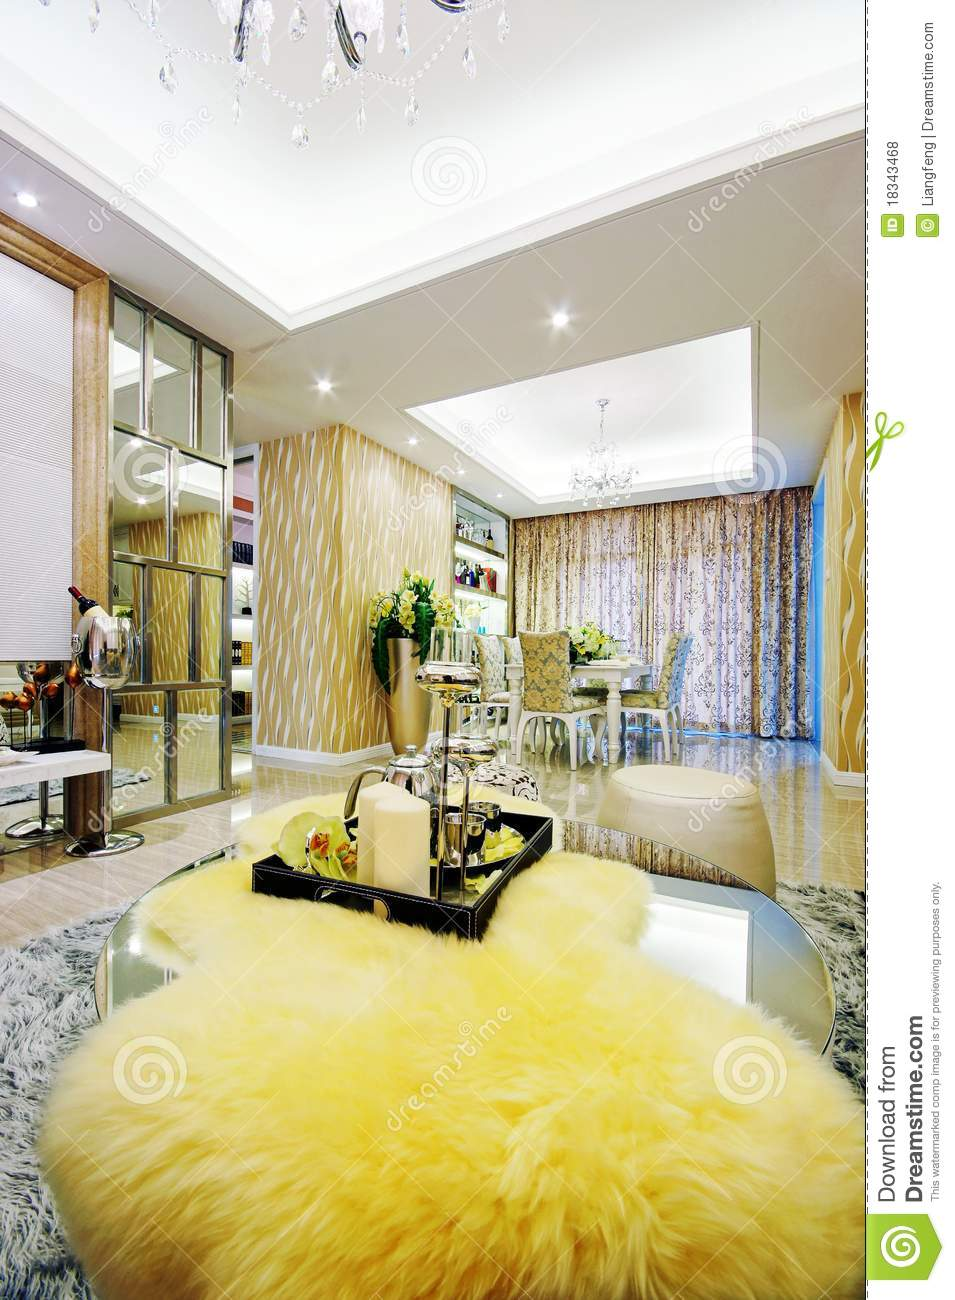 Beautiful room decoration royalty free stock photos for Beautiful room decoration